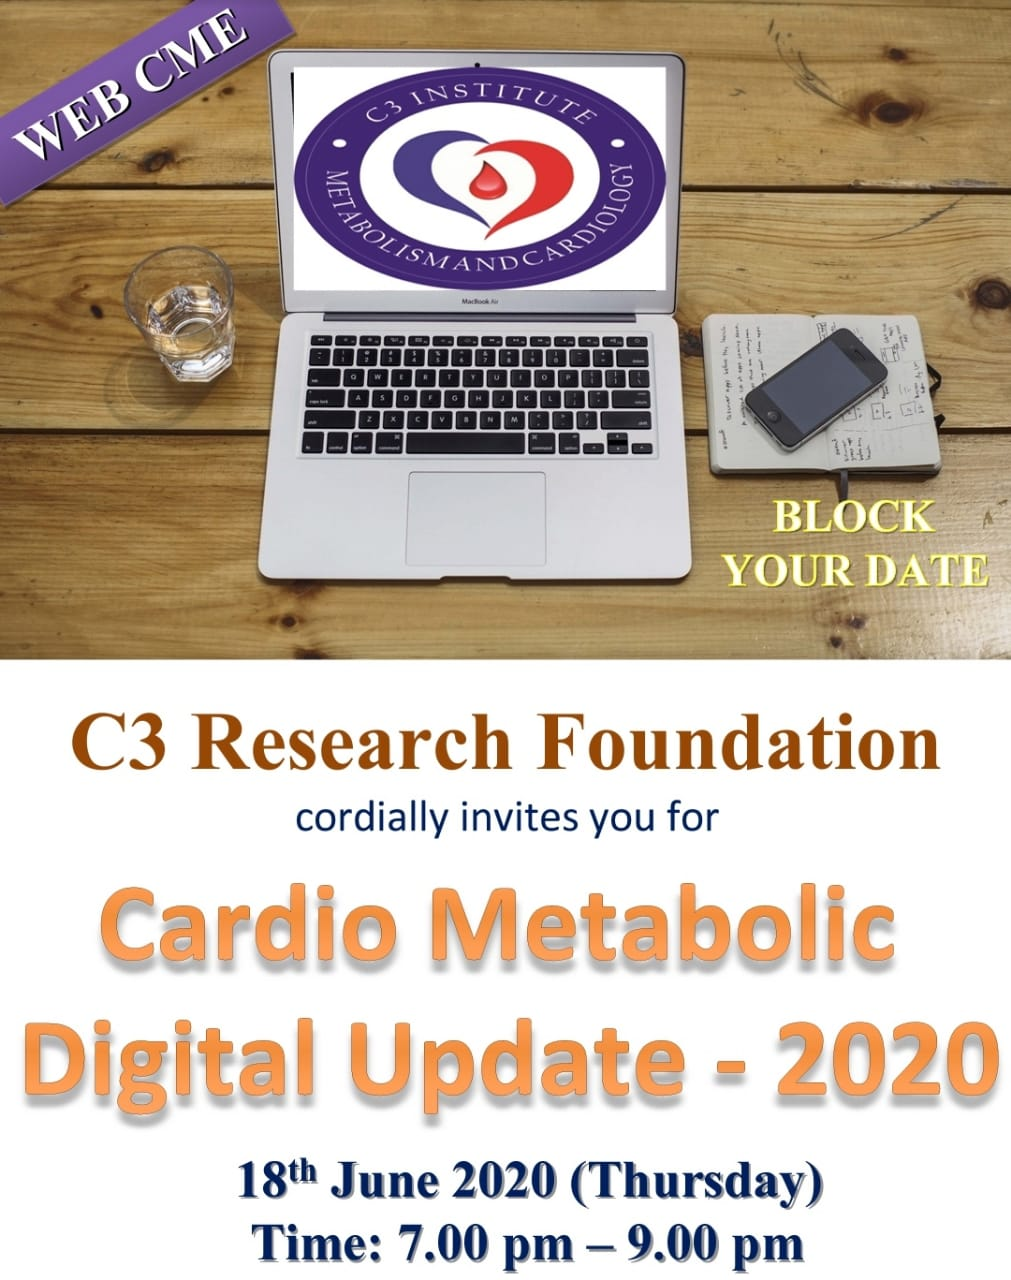 Cardio Metabolic Digital Update - 2020